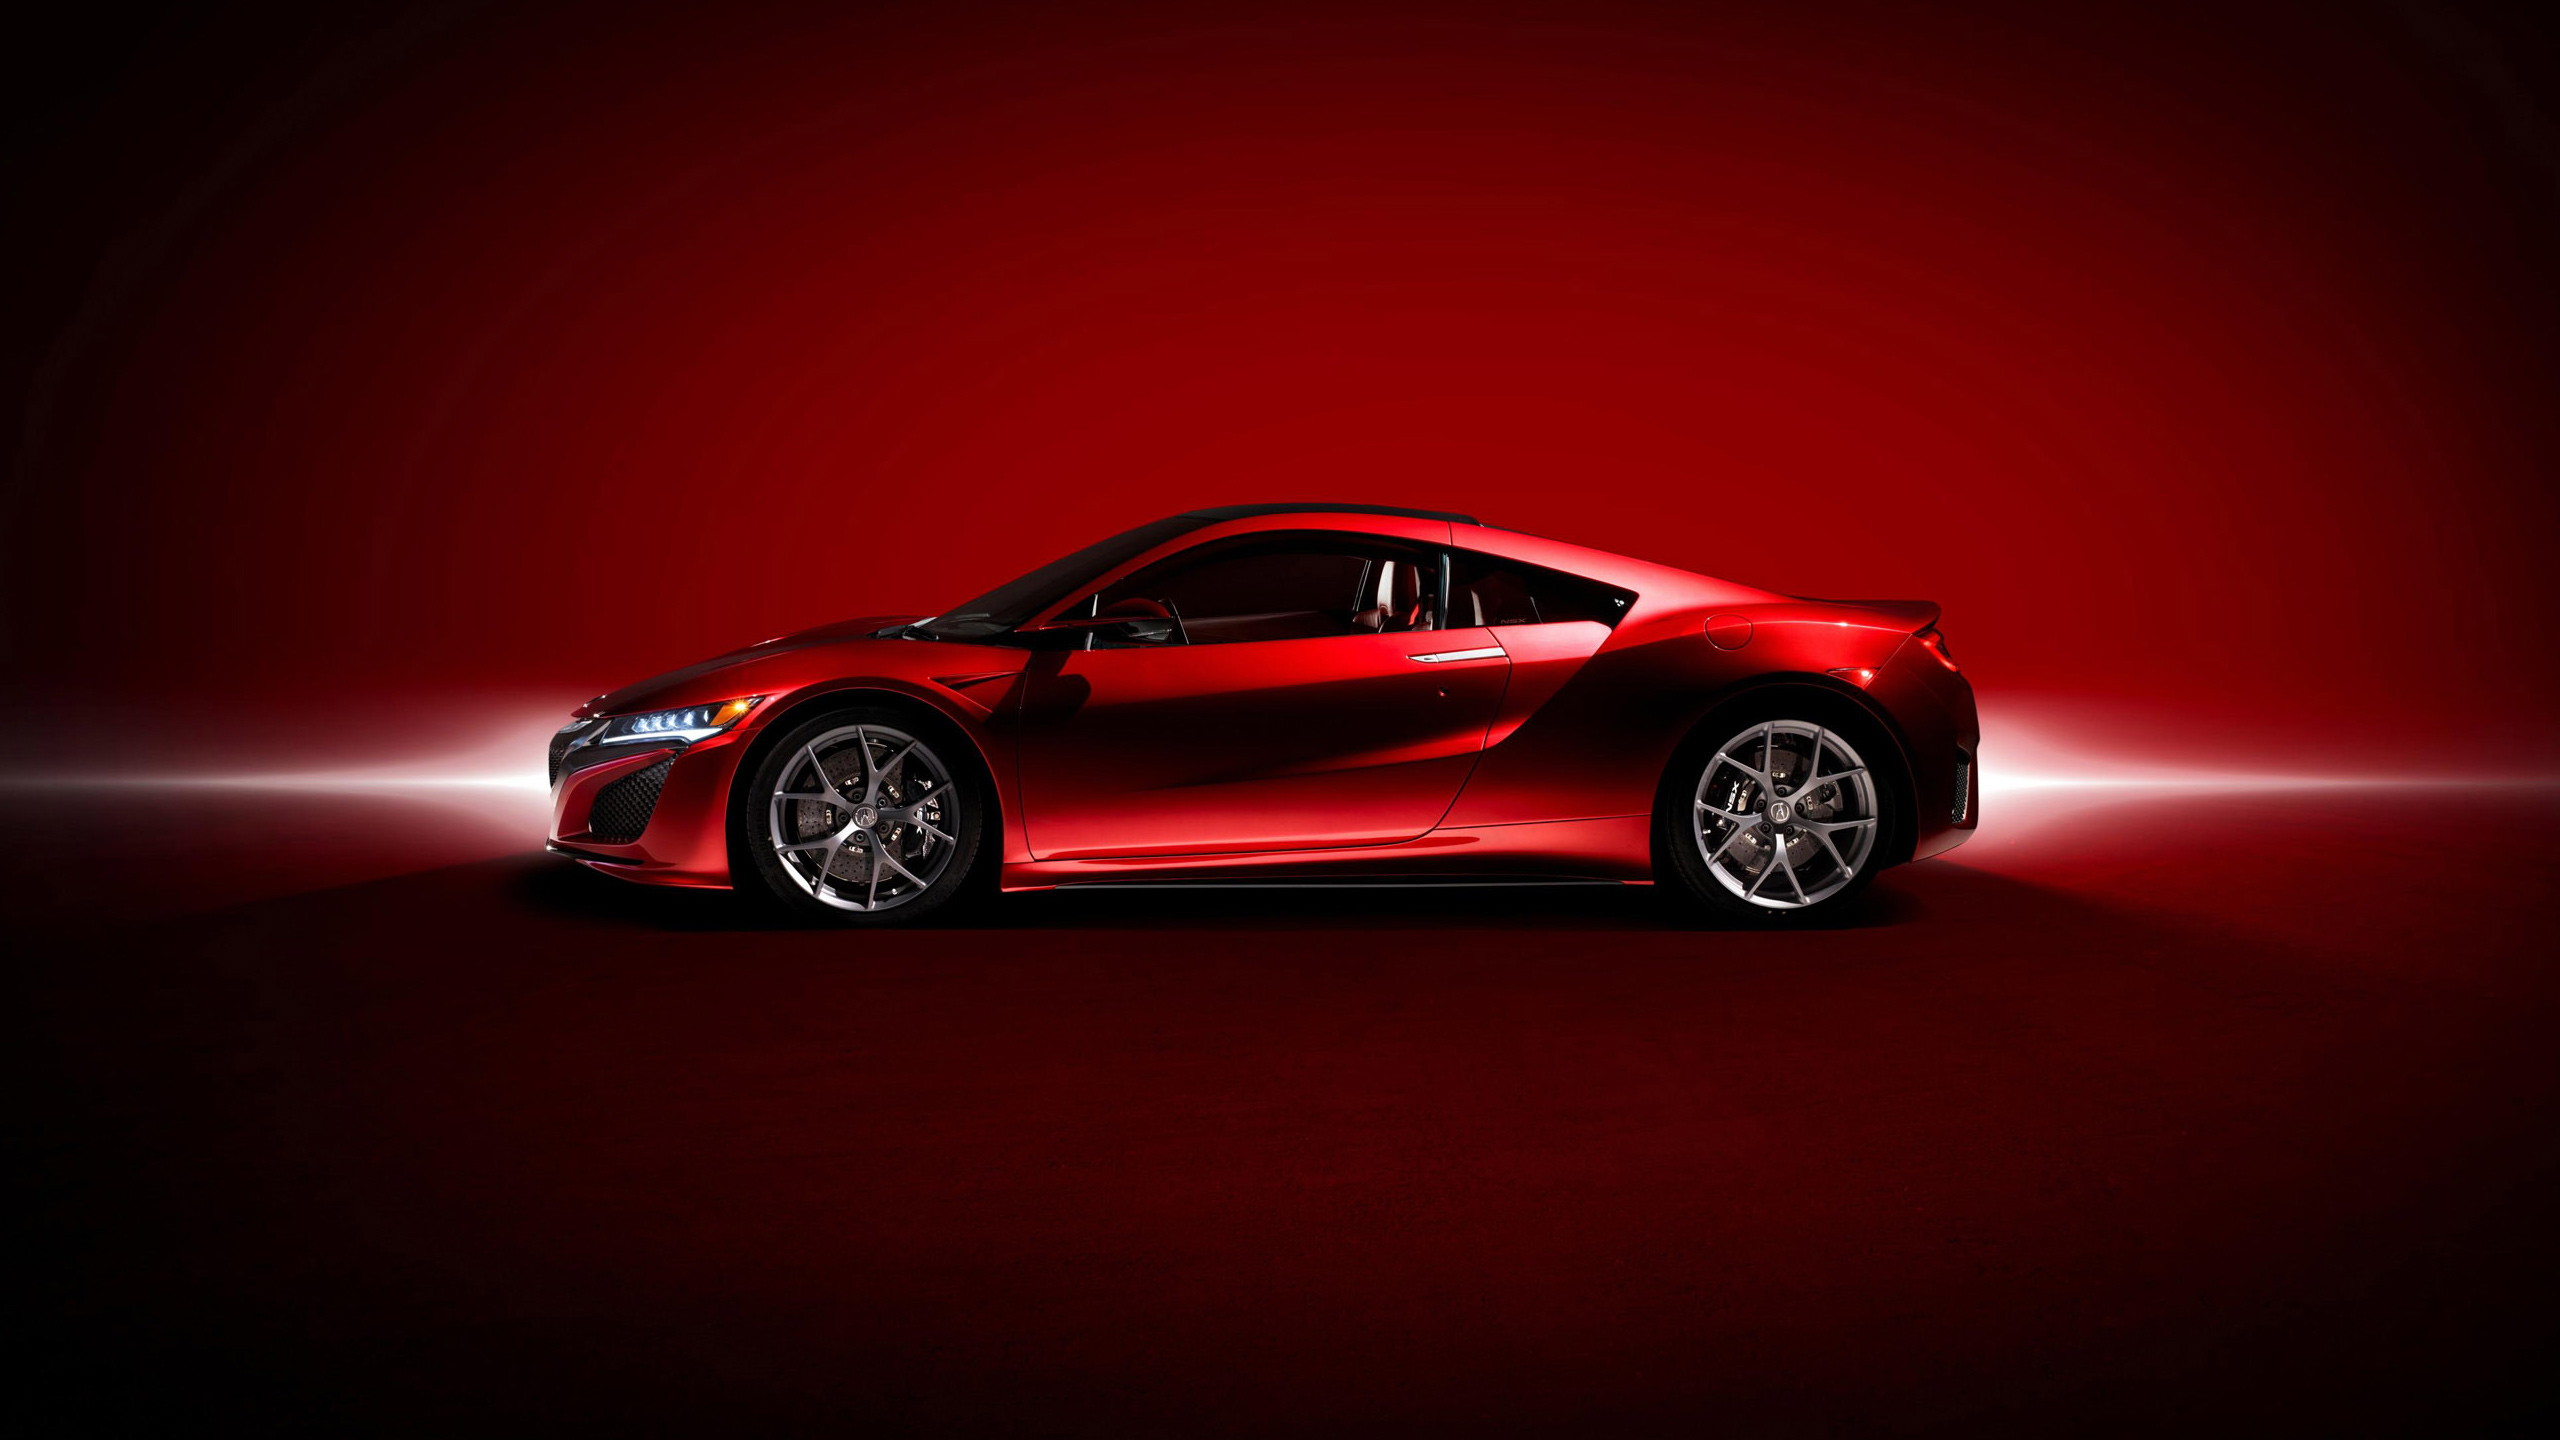 2017 acura nsx red 3 wallpaper